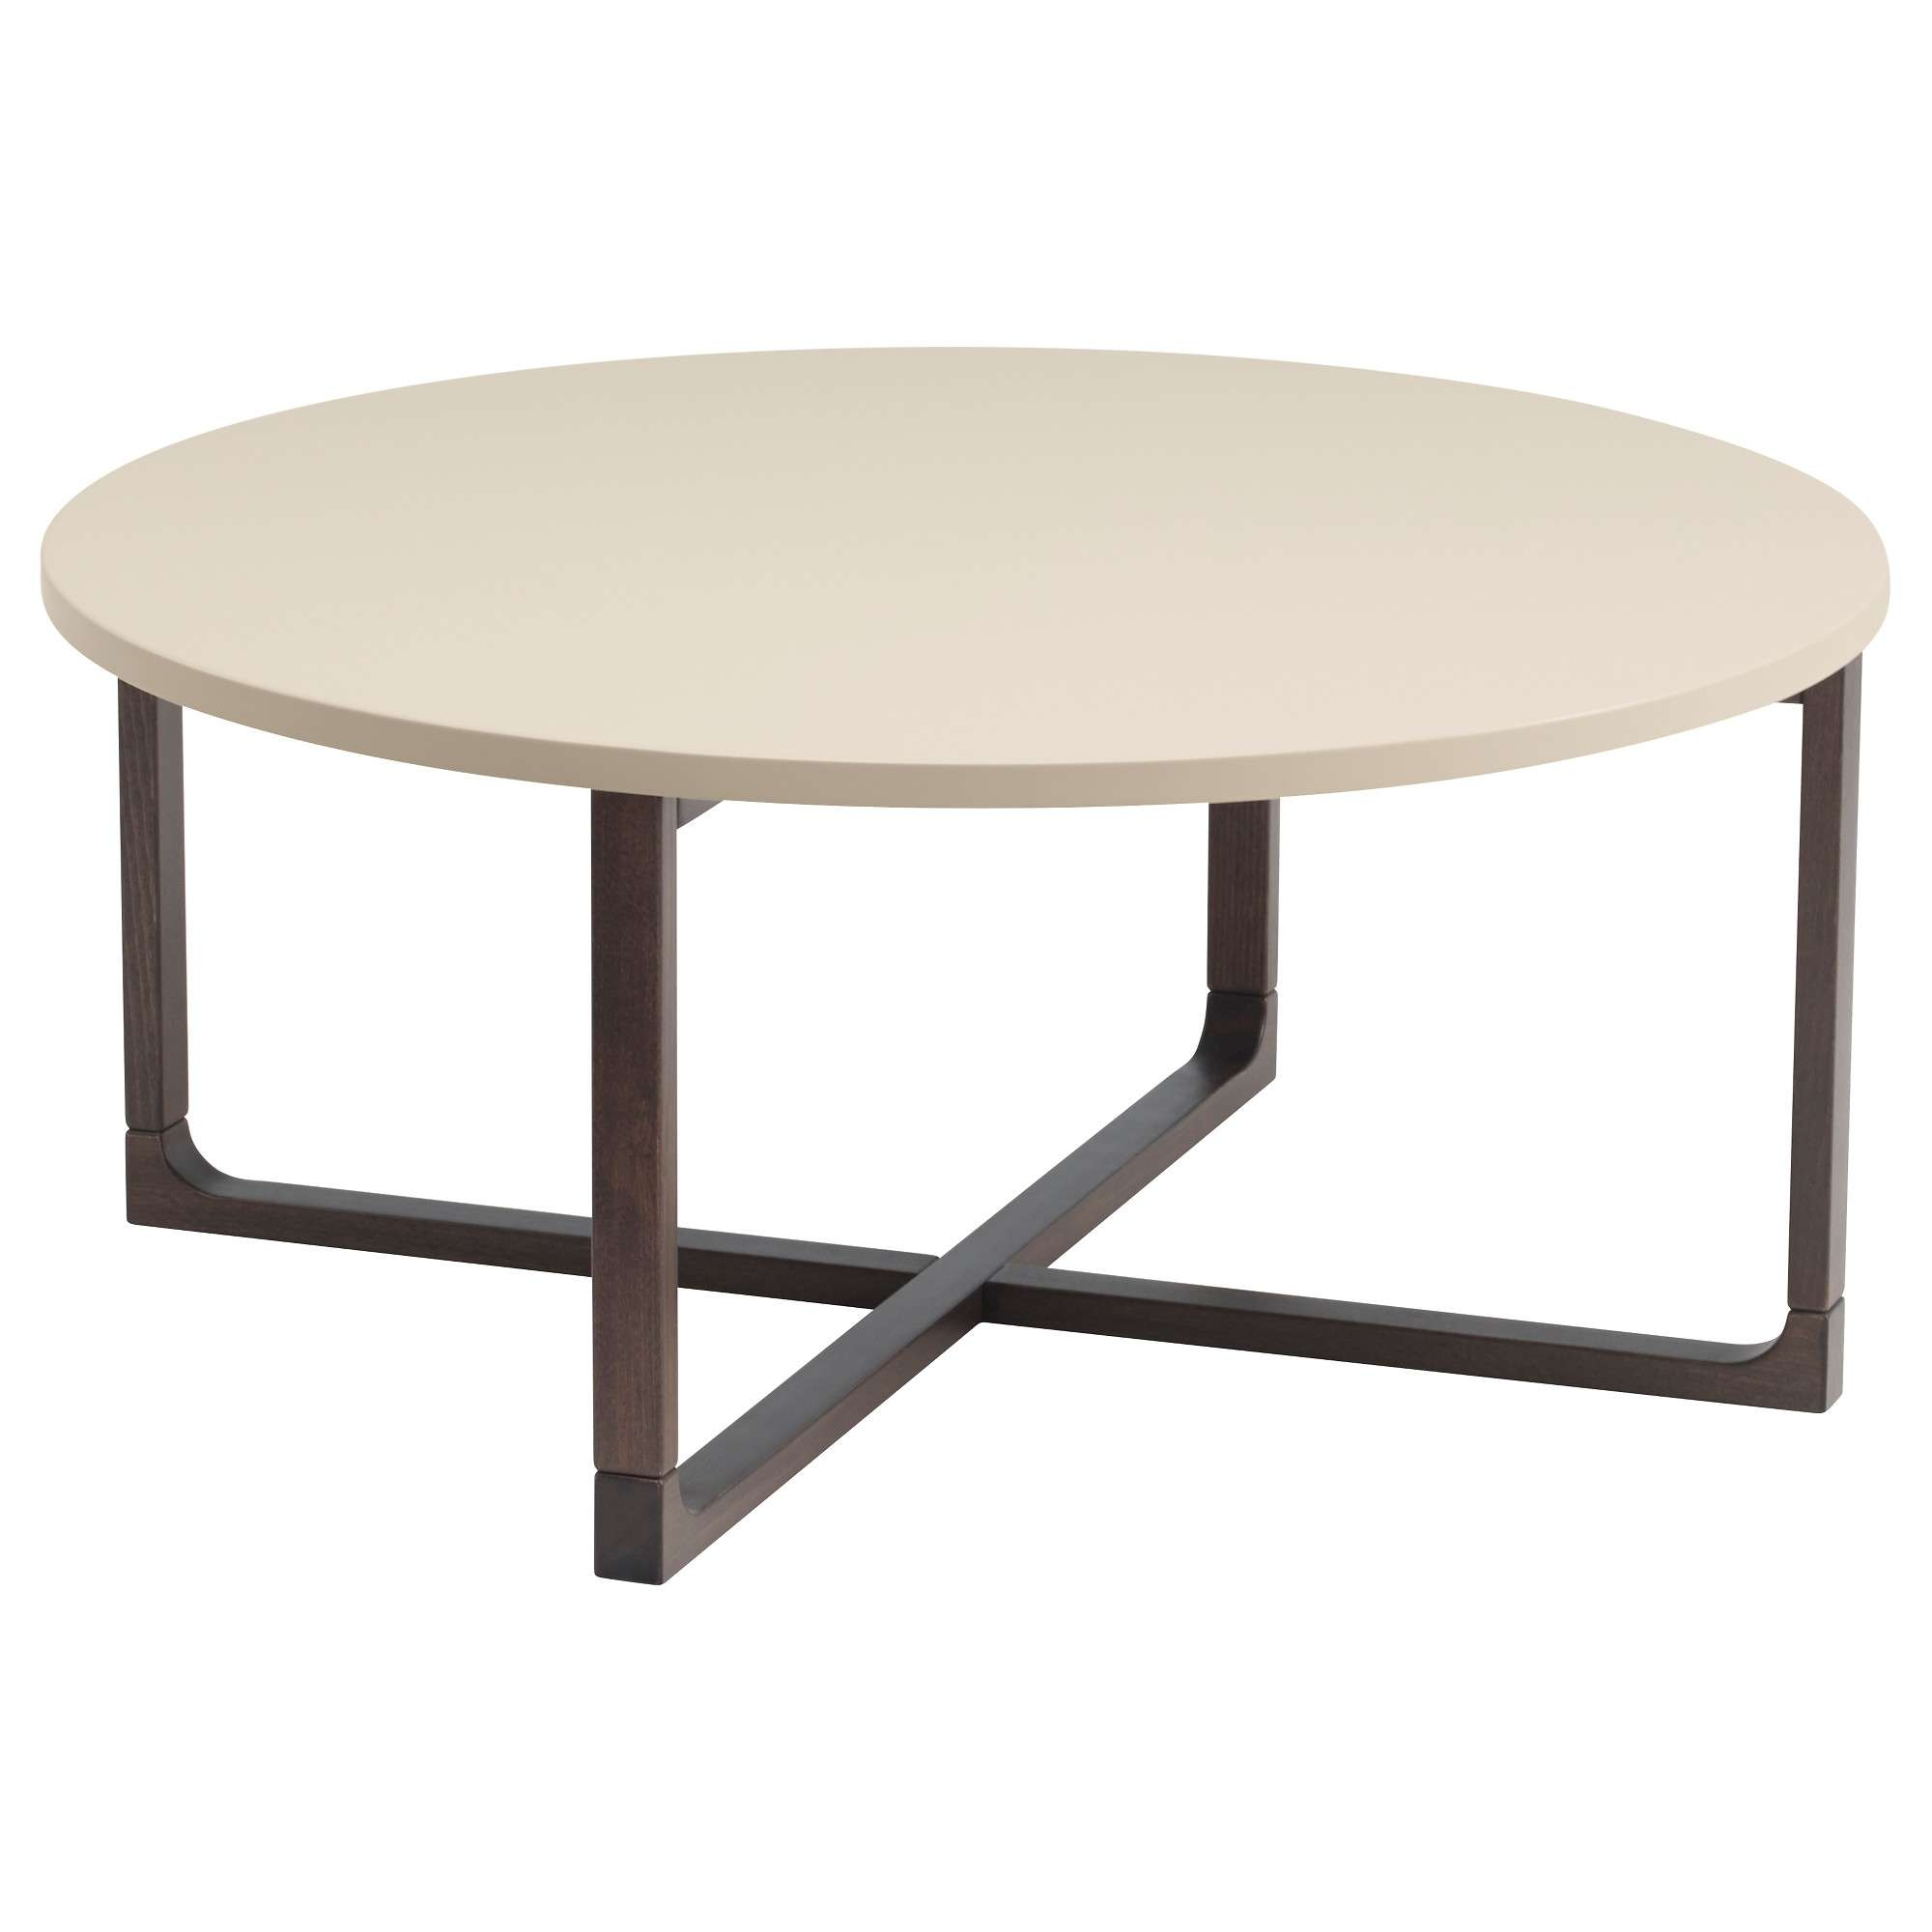 Rissna Coffee Table – Ikea With 2018 Beige Coffee Tables (View 16 of 20)